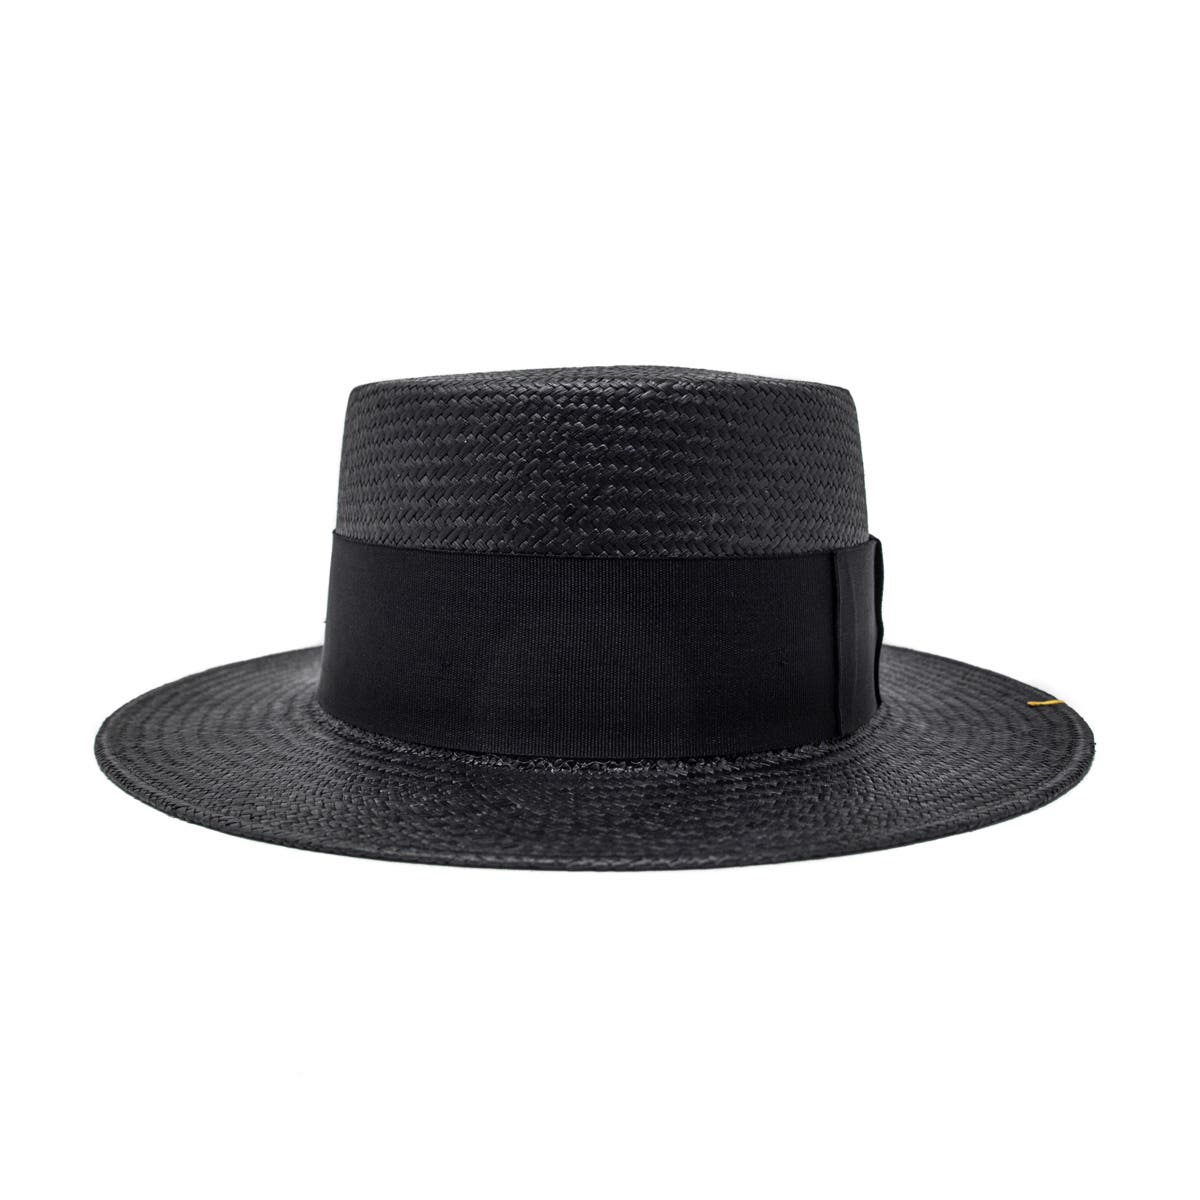 Quito Panama Boater Hat - Black